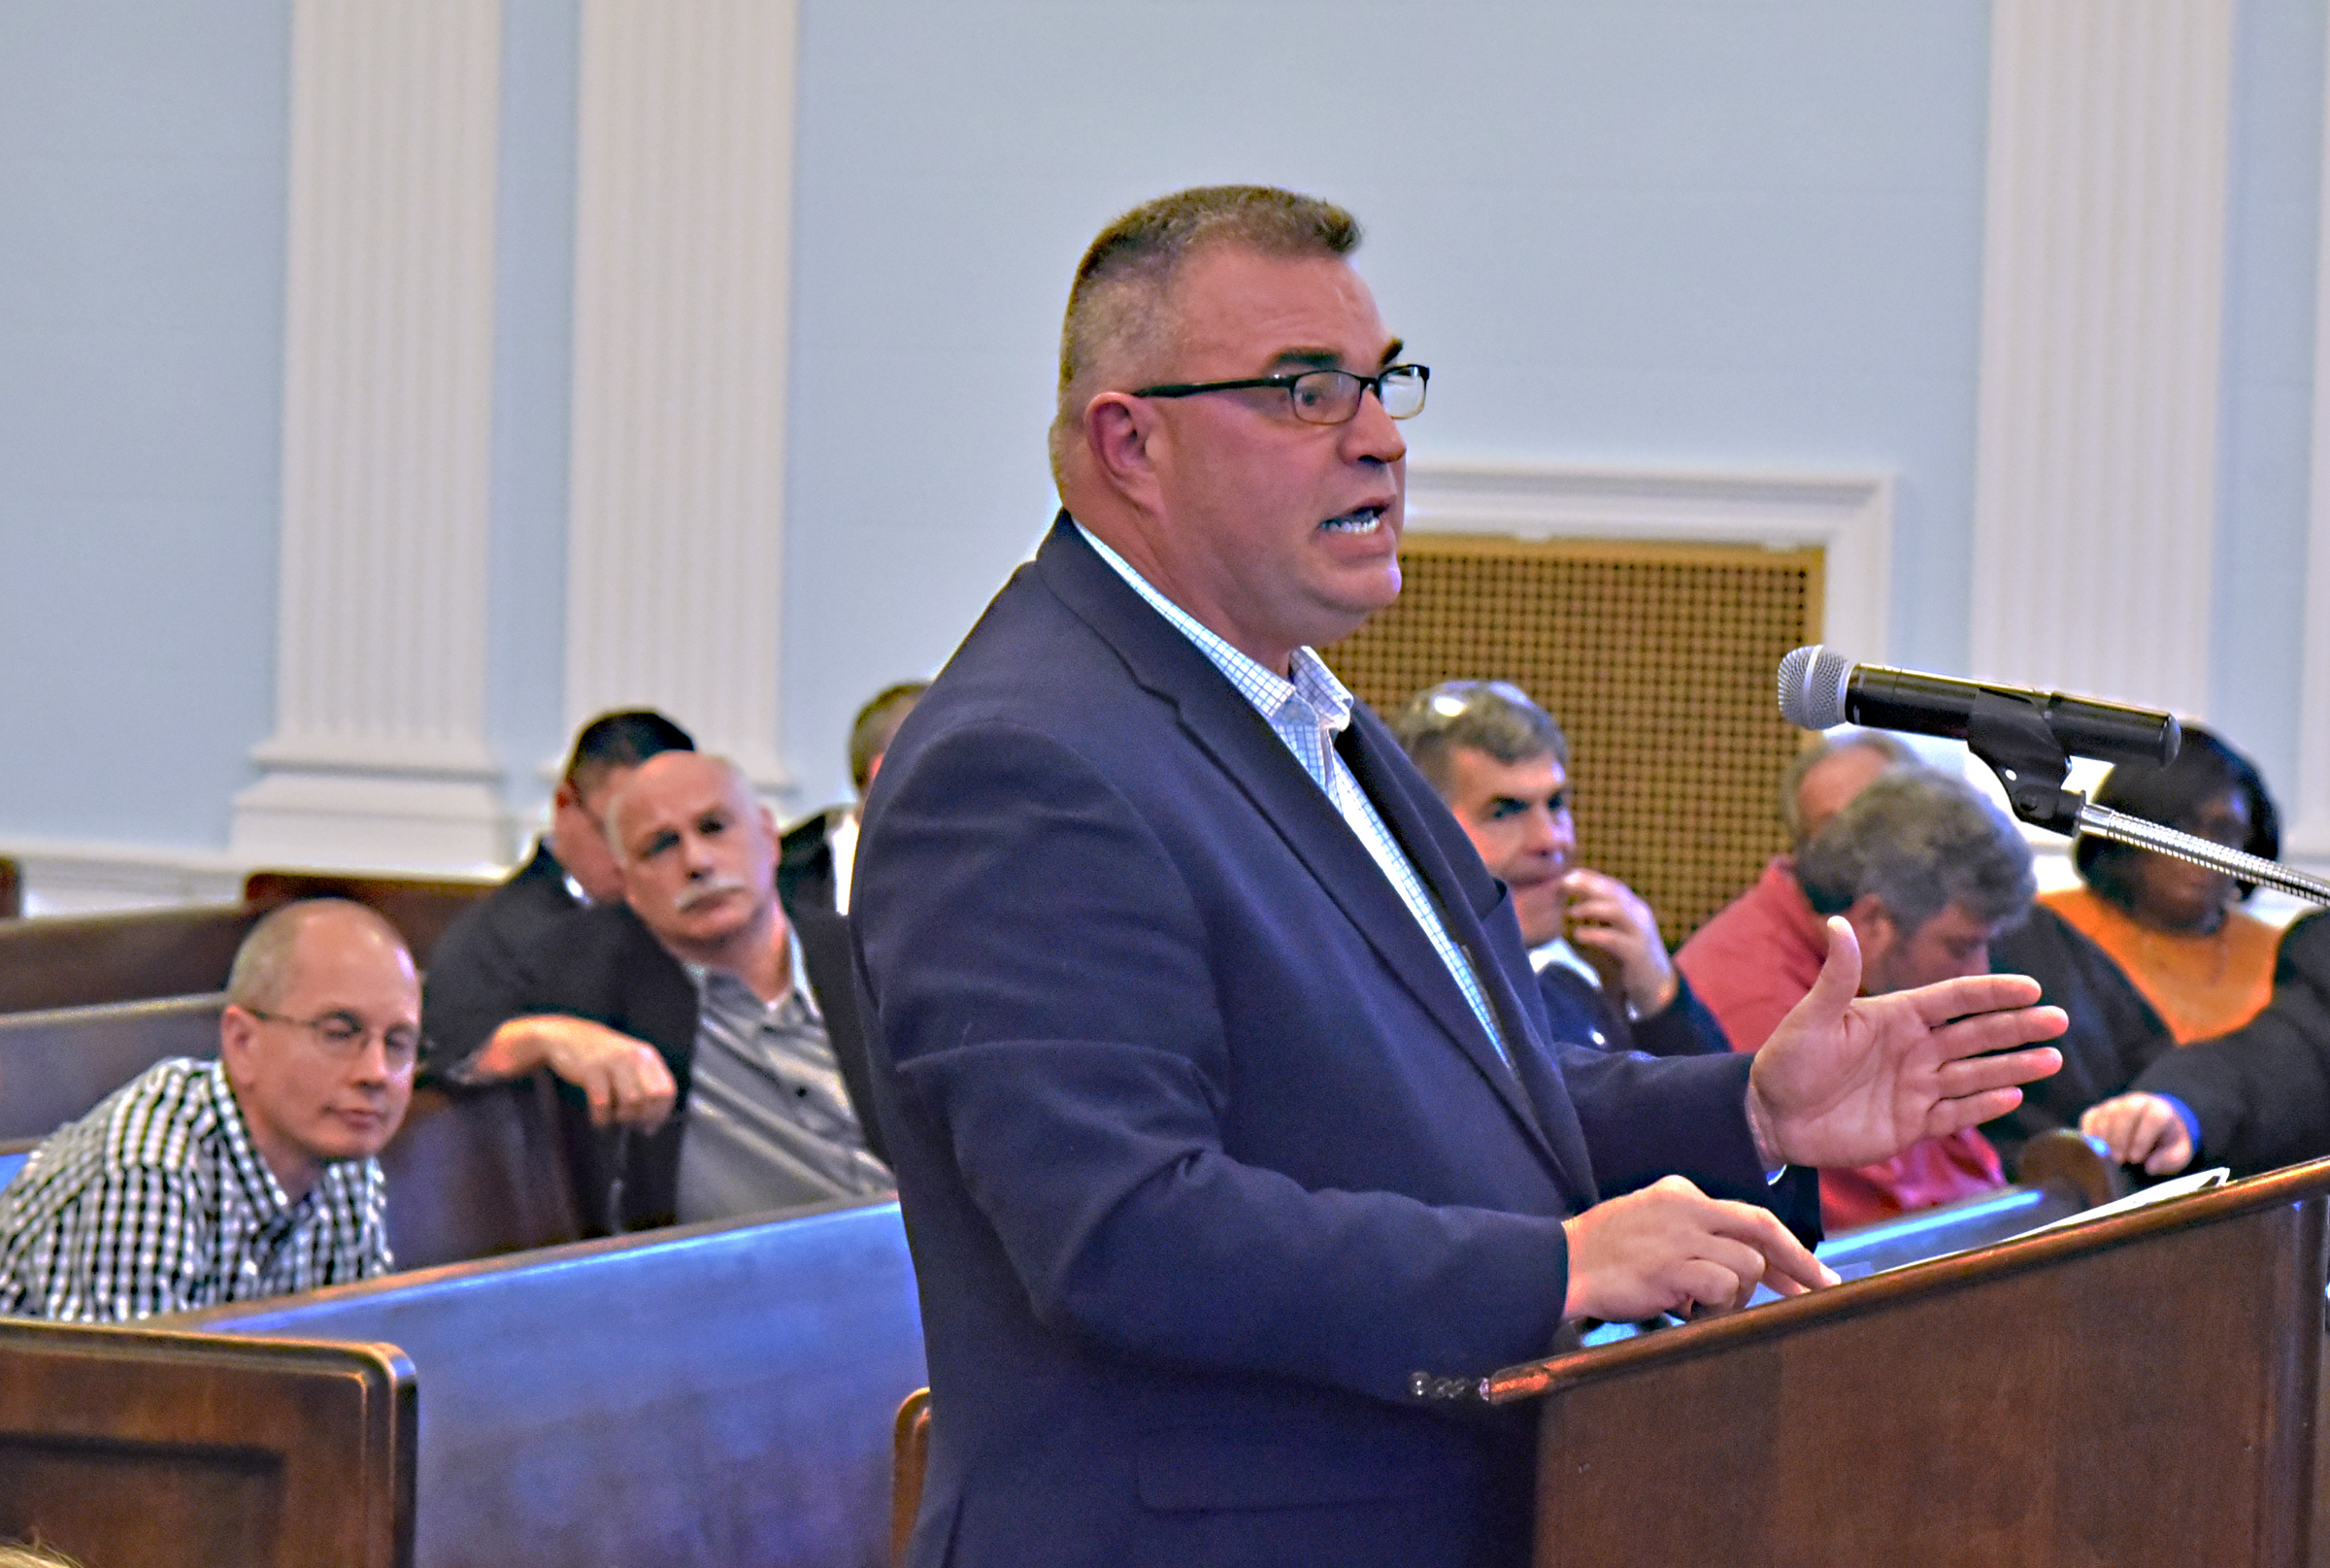 The Niagara Falls Water Board was significantly revamped at the top levels earlier this year, with the influential Nick Forster serving as common council representative. Forster says many of the problems the city is grappling with were ignored by the previous regimes. Photo by Joseph Kissel.